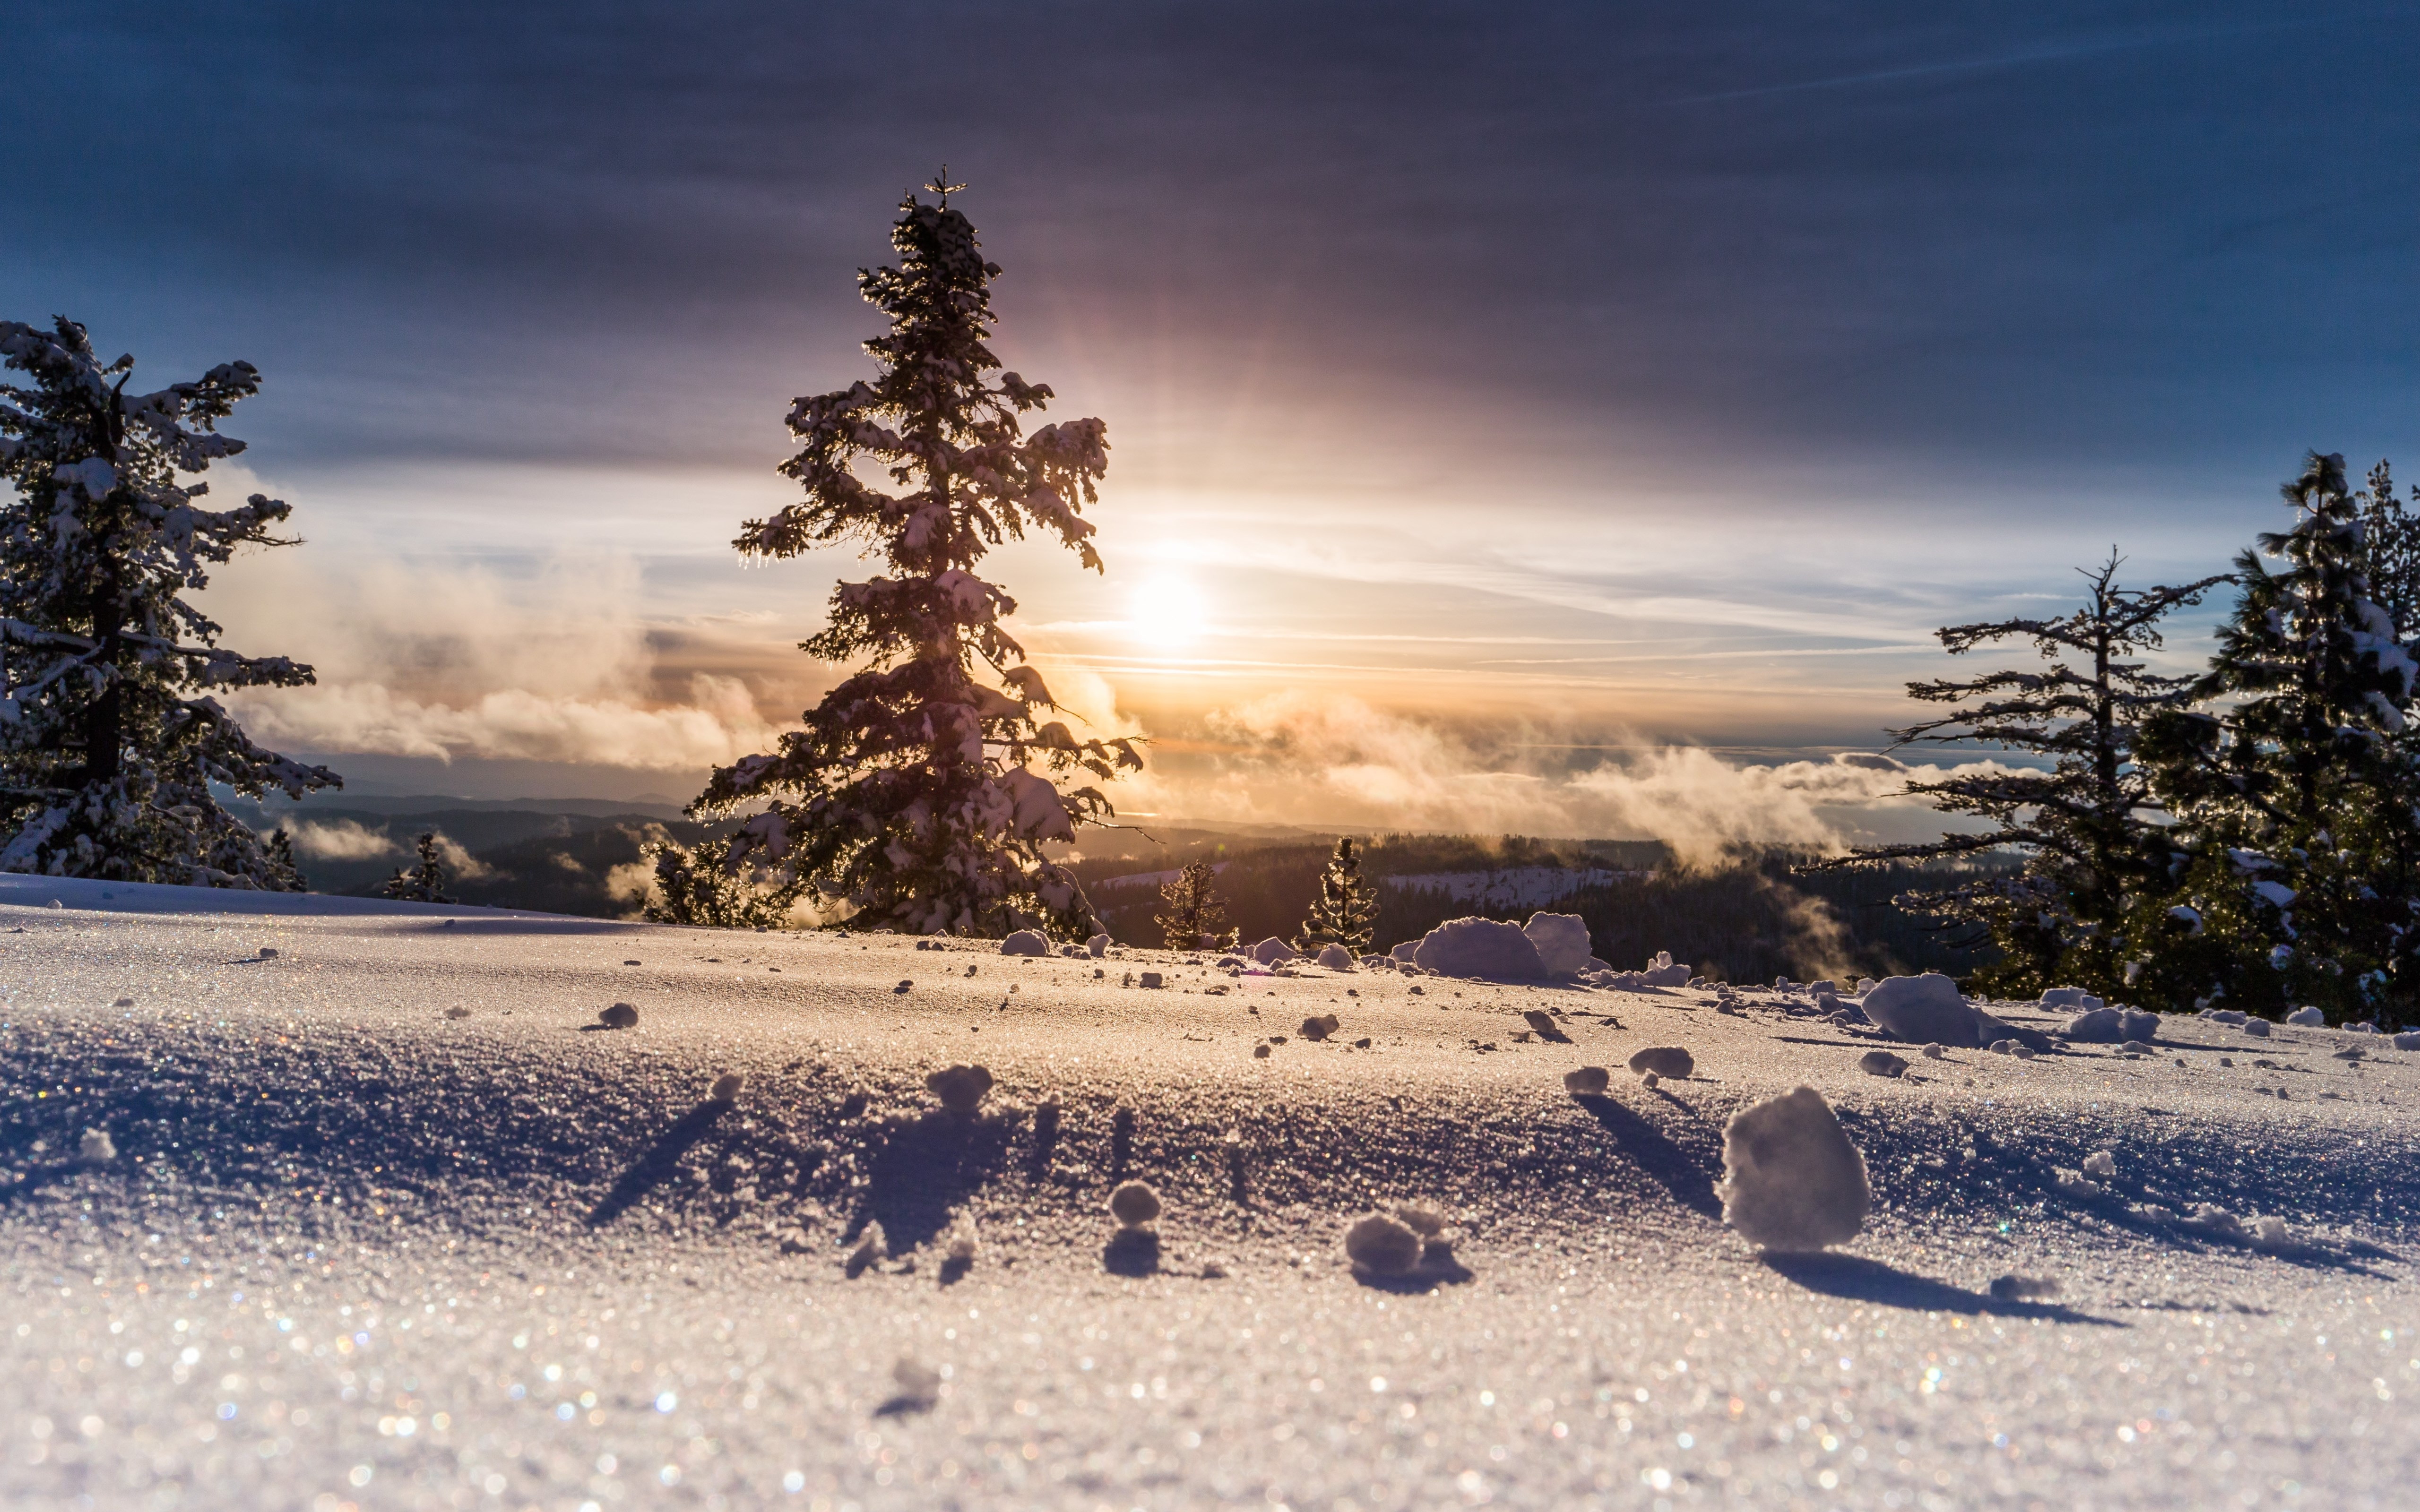 Perfect Winter view wallpaper 5120x3200